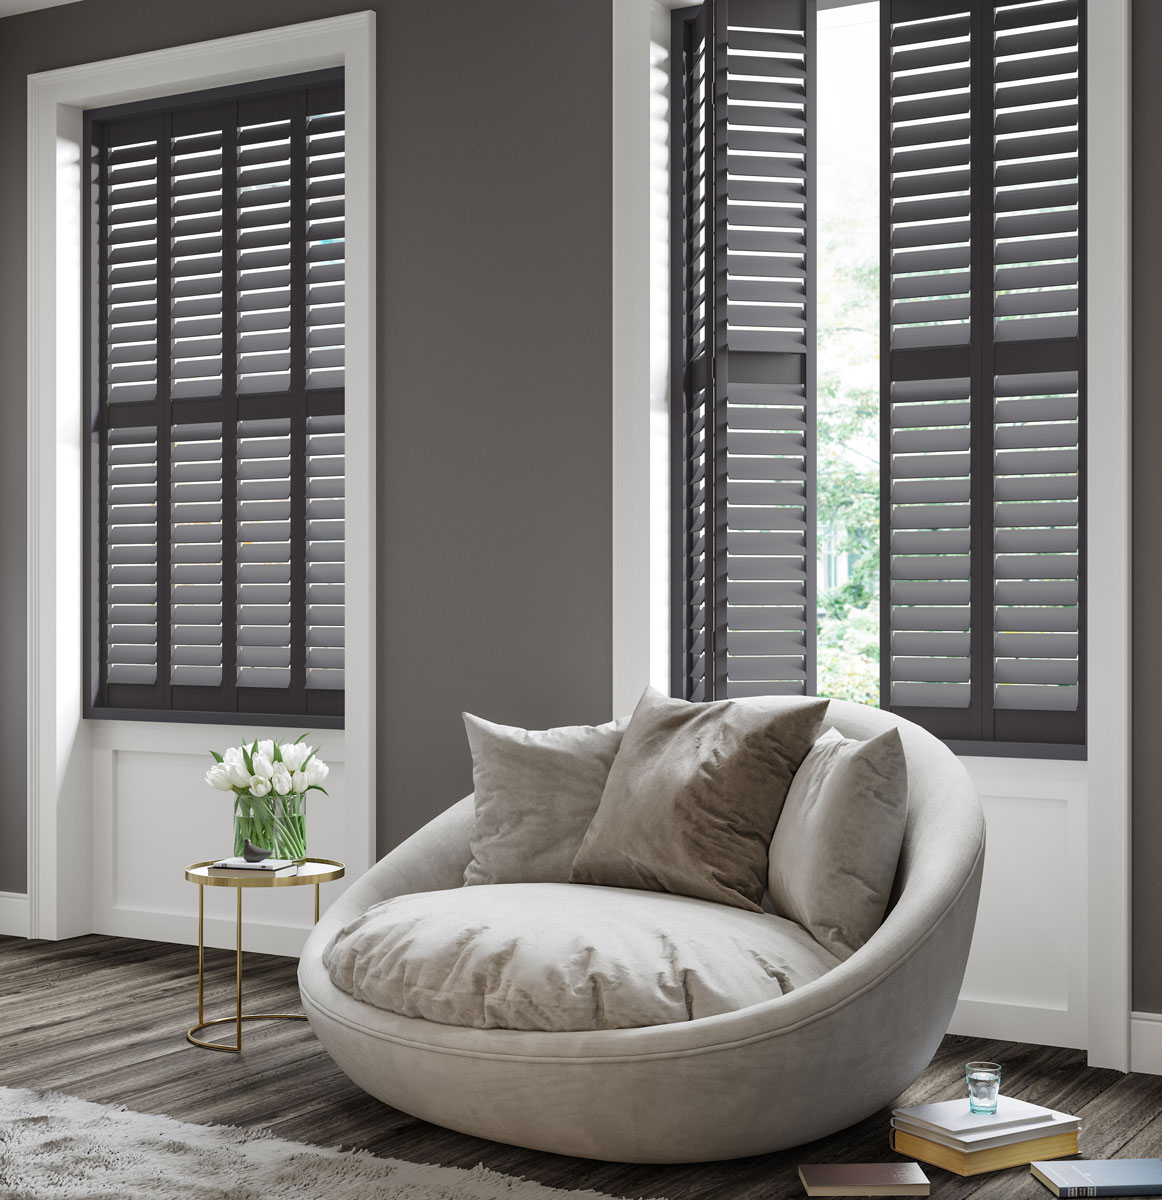 Dakota hardwood shutters